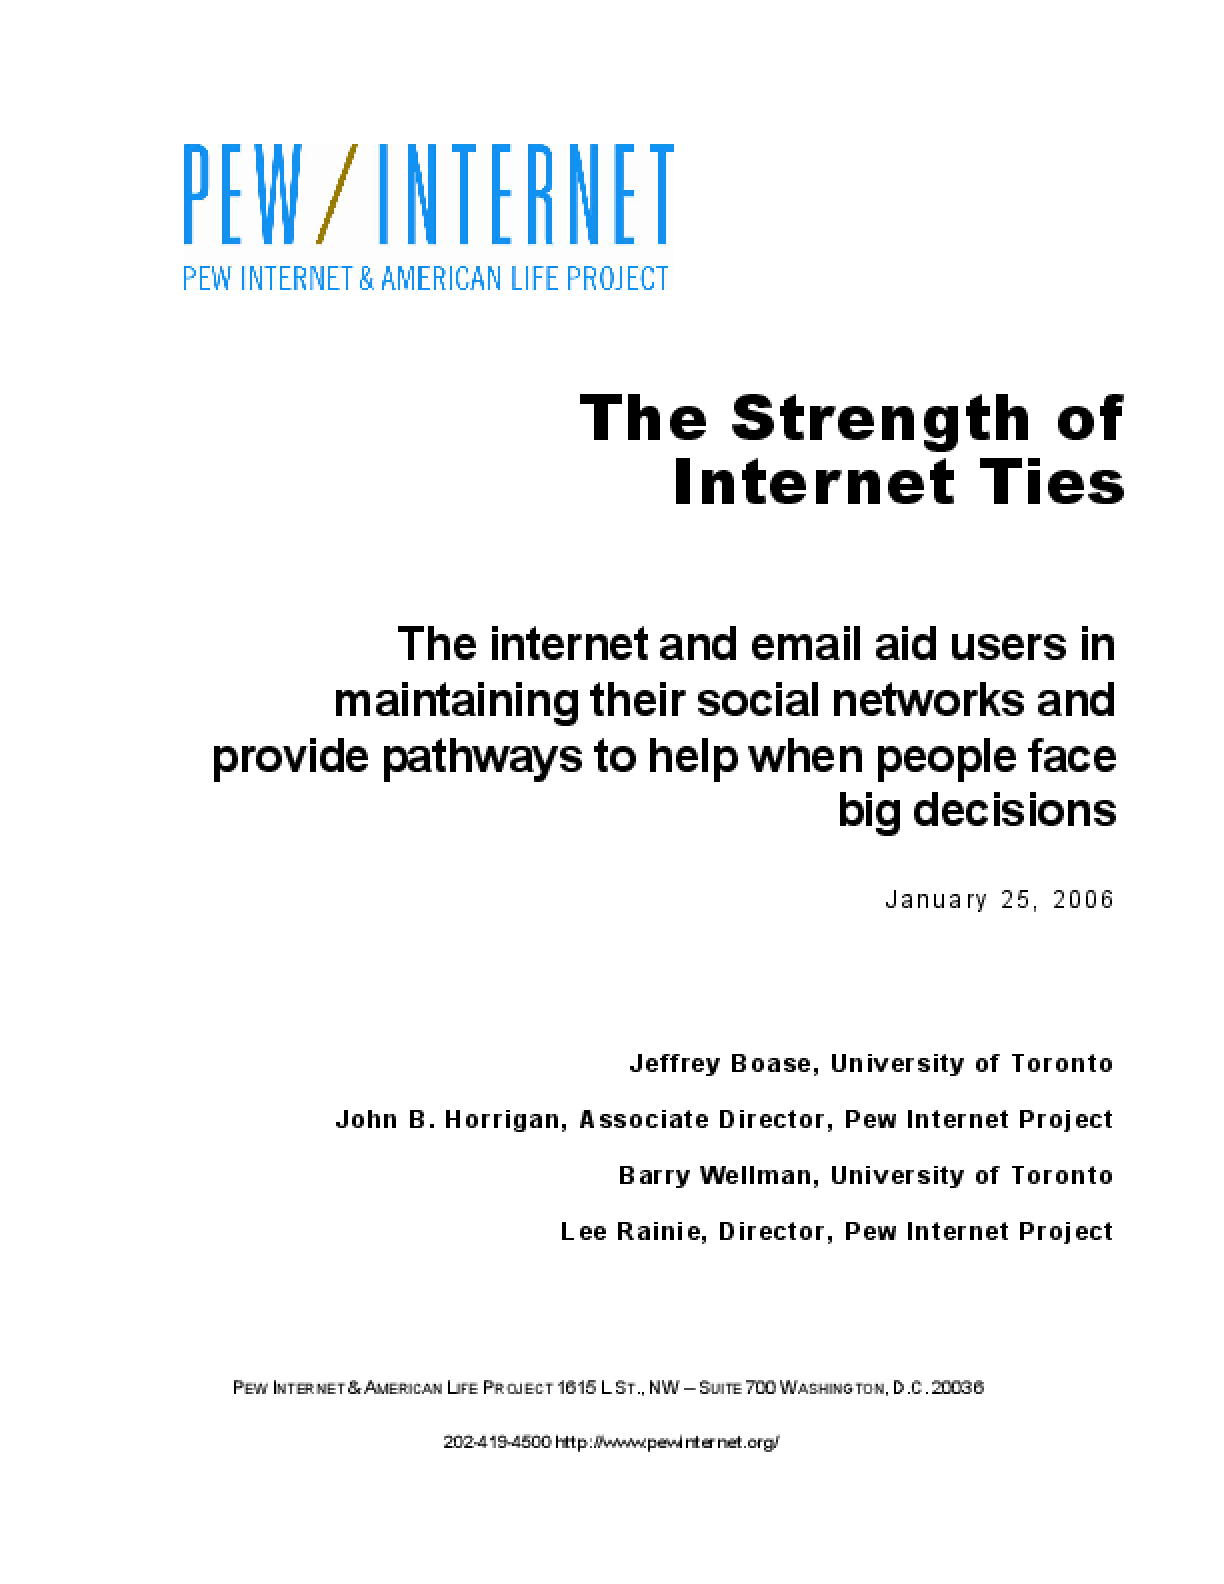 The Strength of Internet Ties